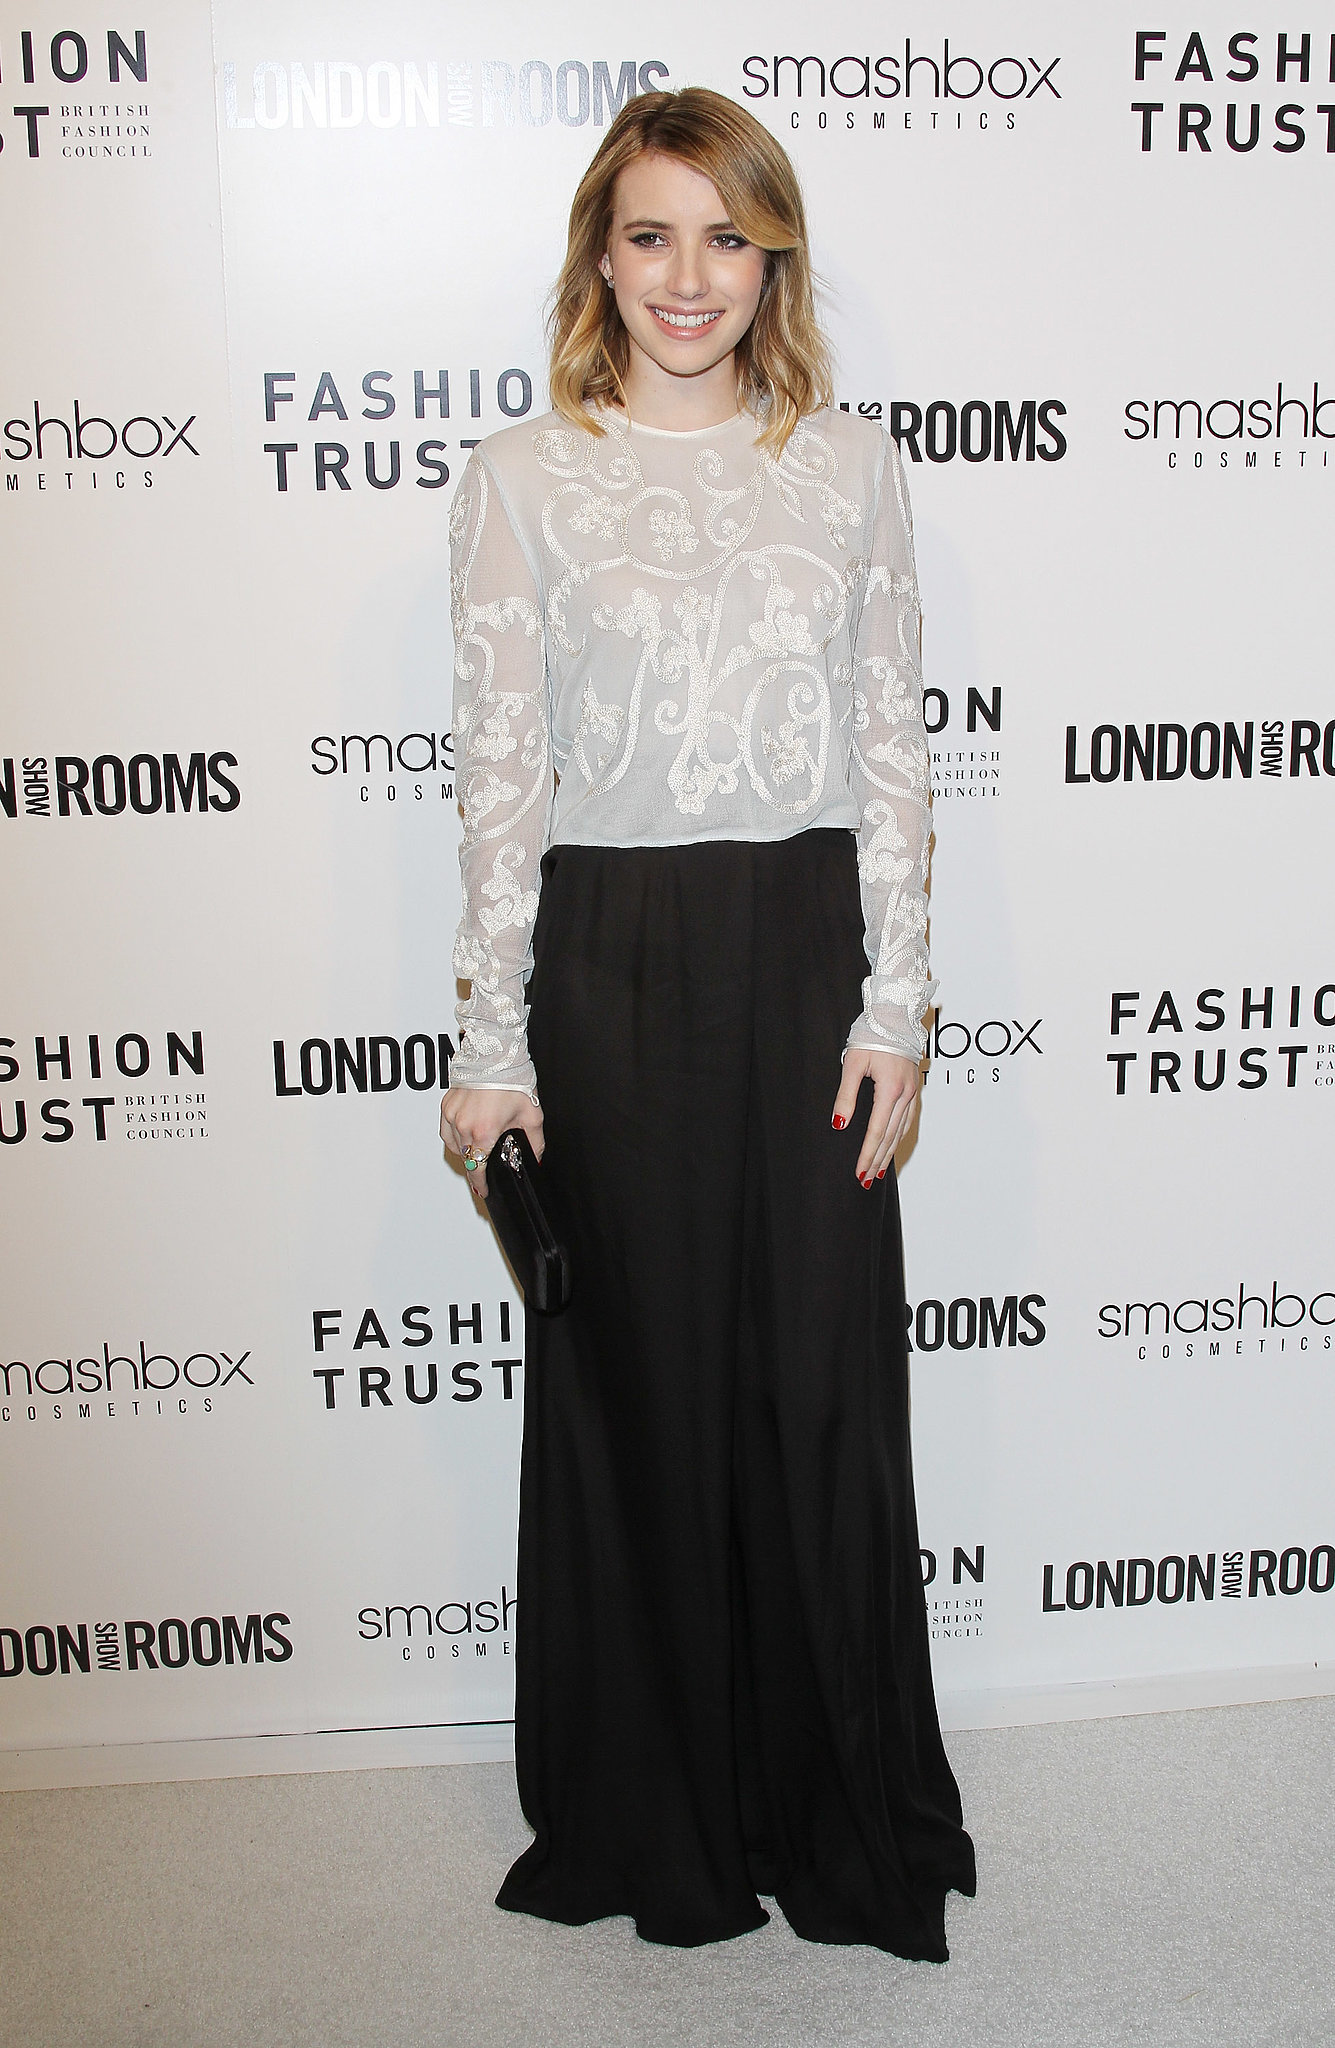 Emma tucked a lacy Jonathan Saunders top into a black maxi skirt for an event in March 2012.